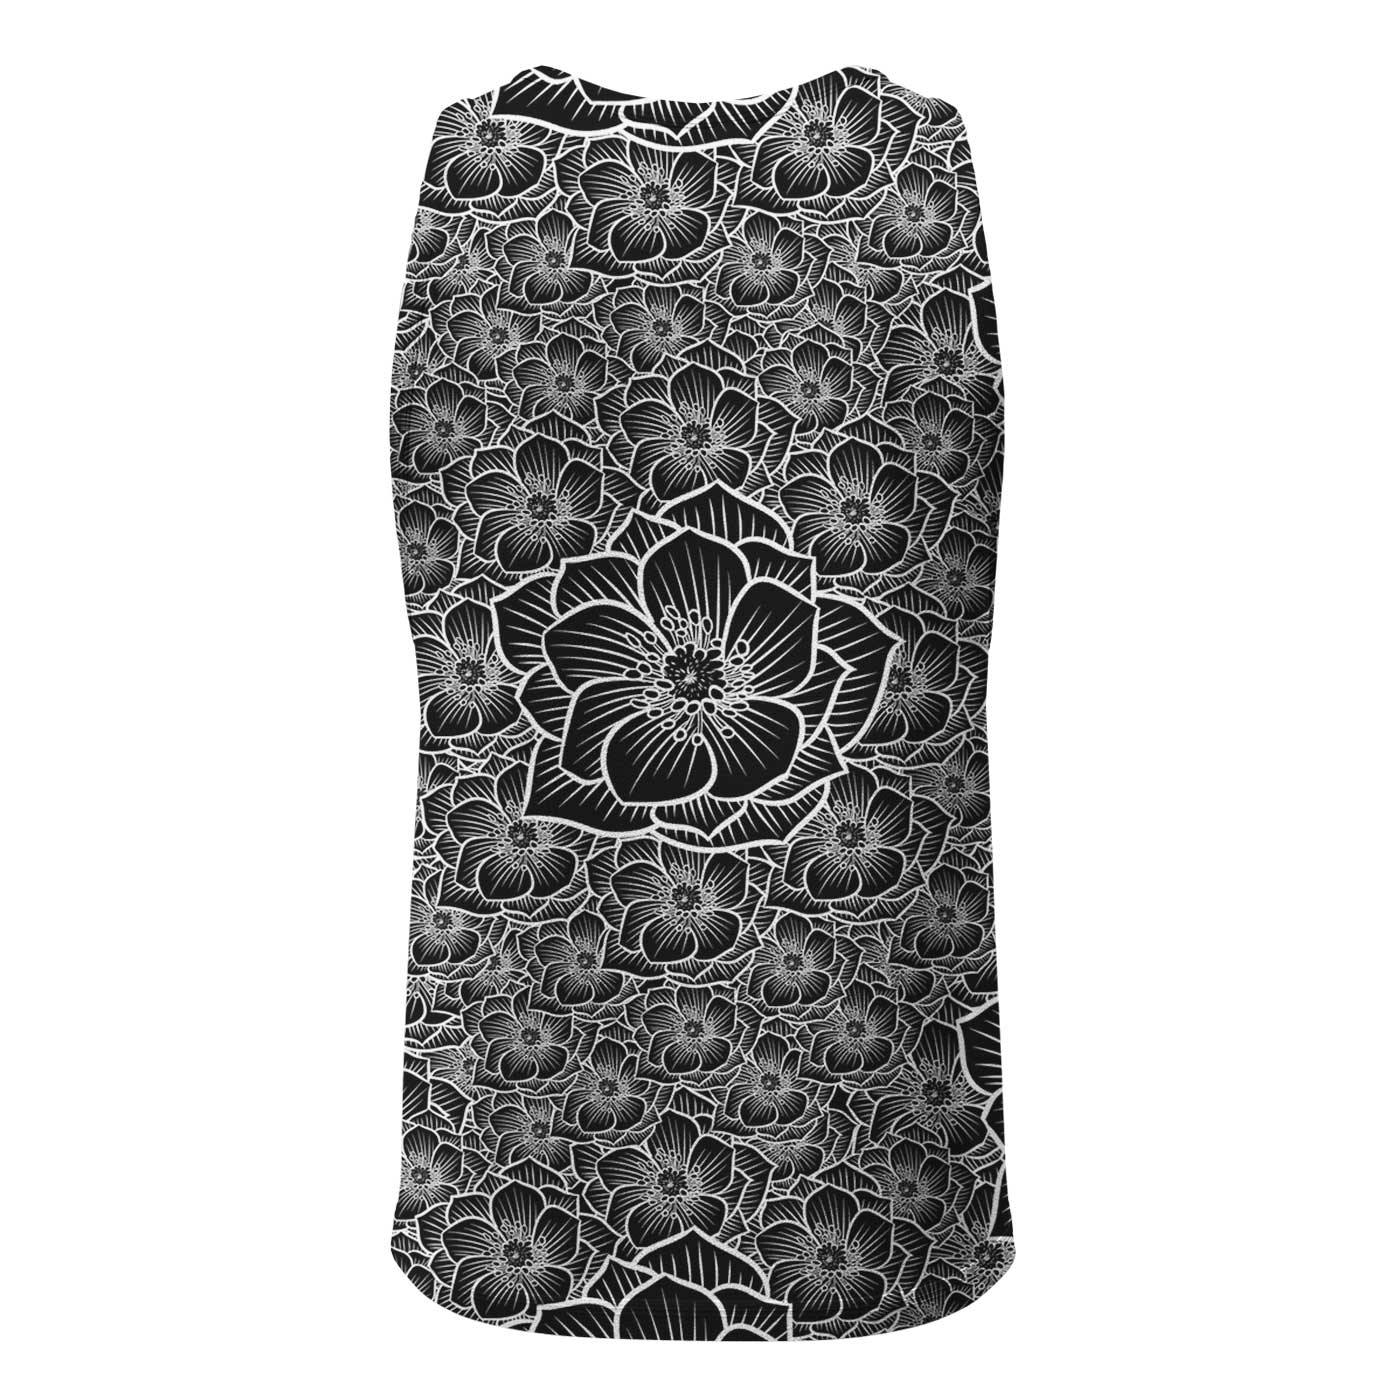 Achromic Flower Tank Top